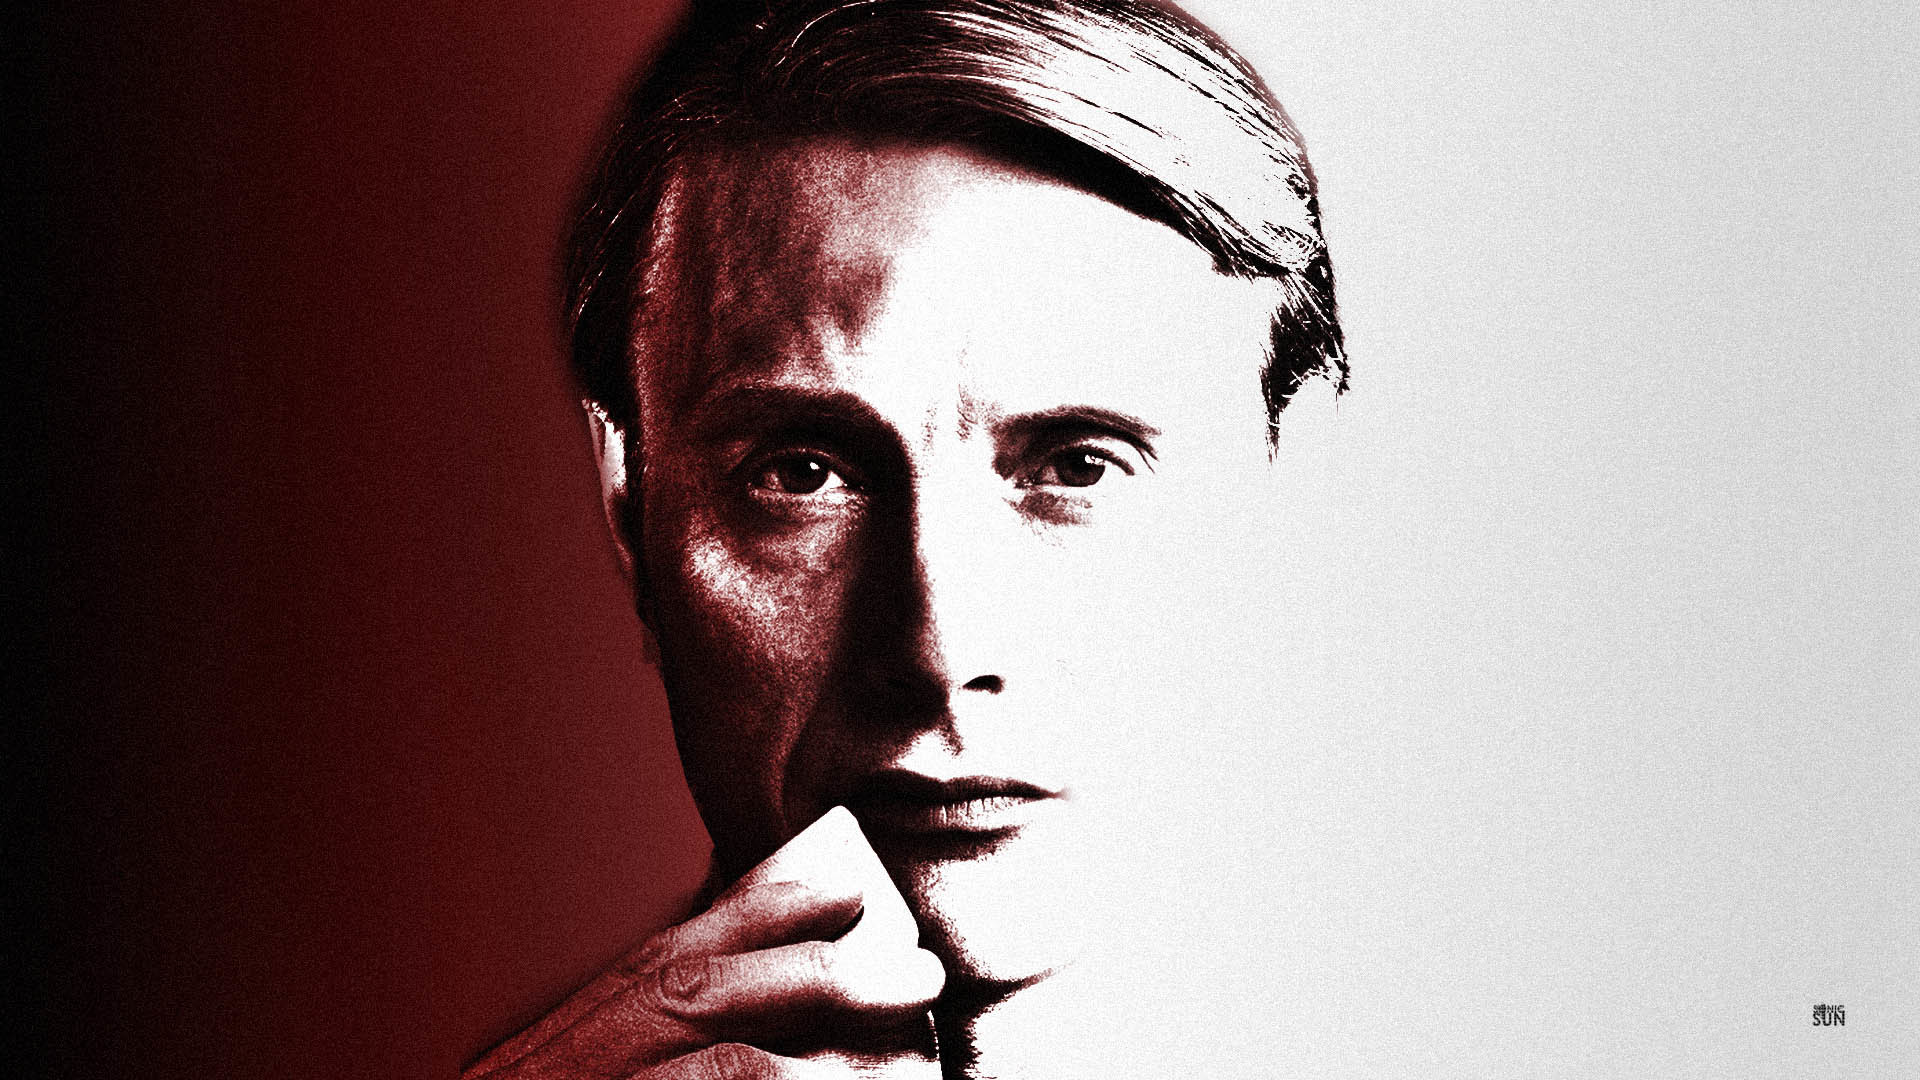 Mads Mikkelsen Hannibal Wallpaper (71+ Images